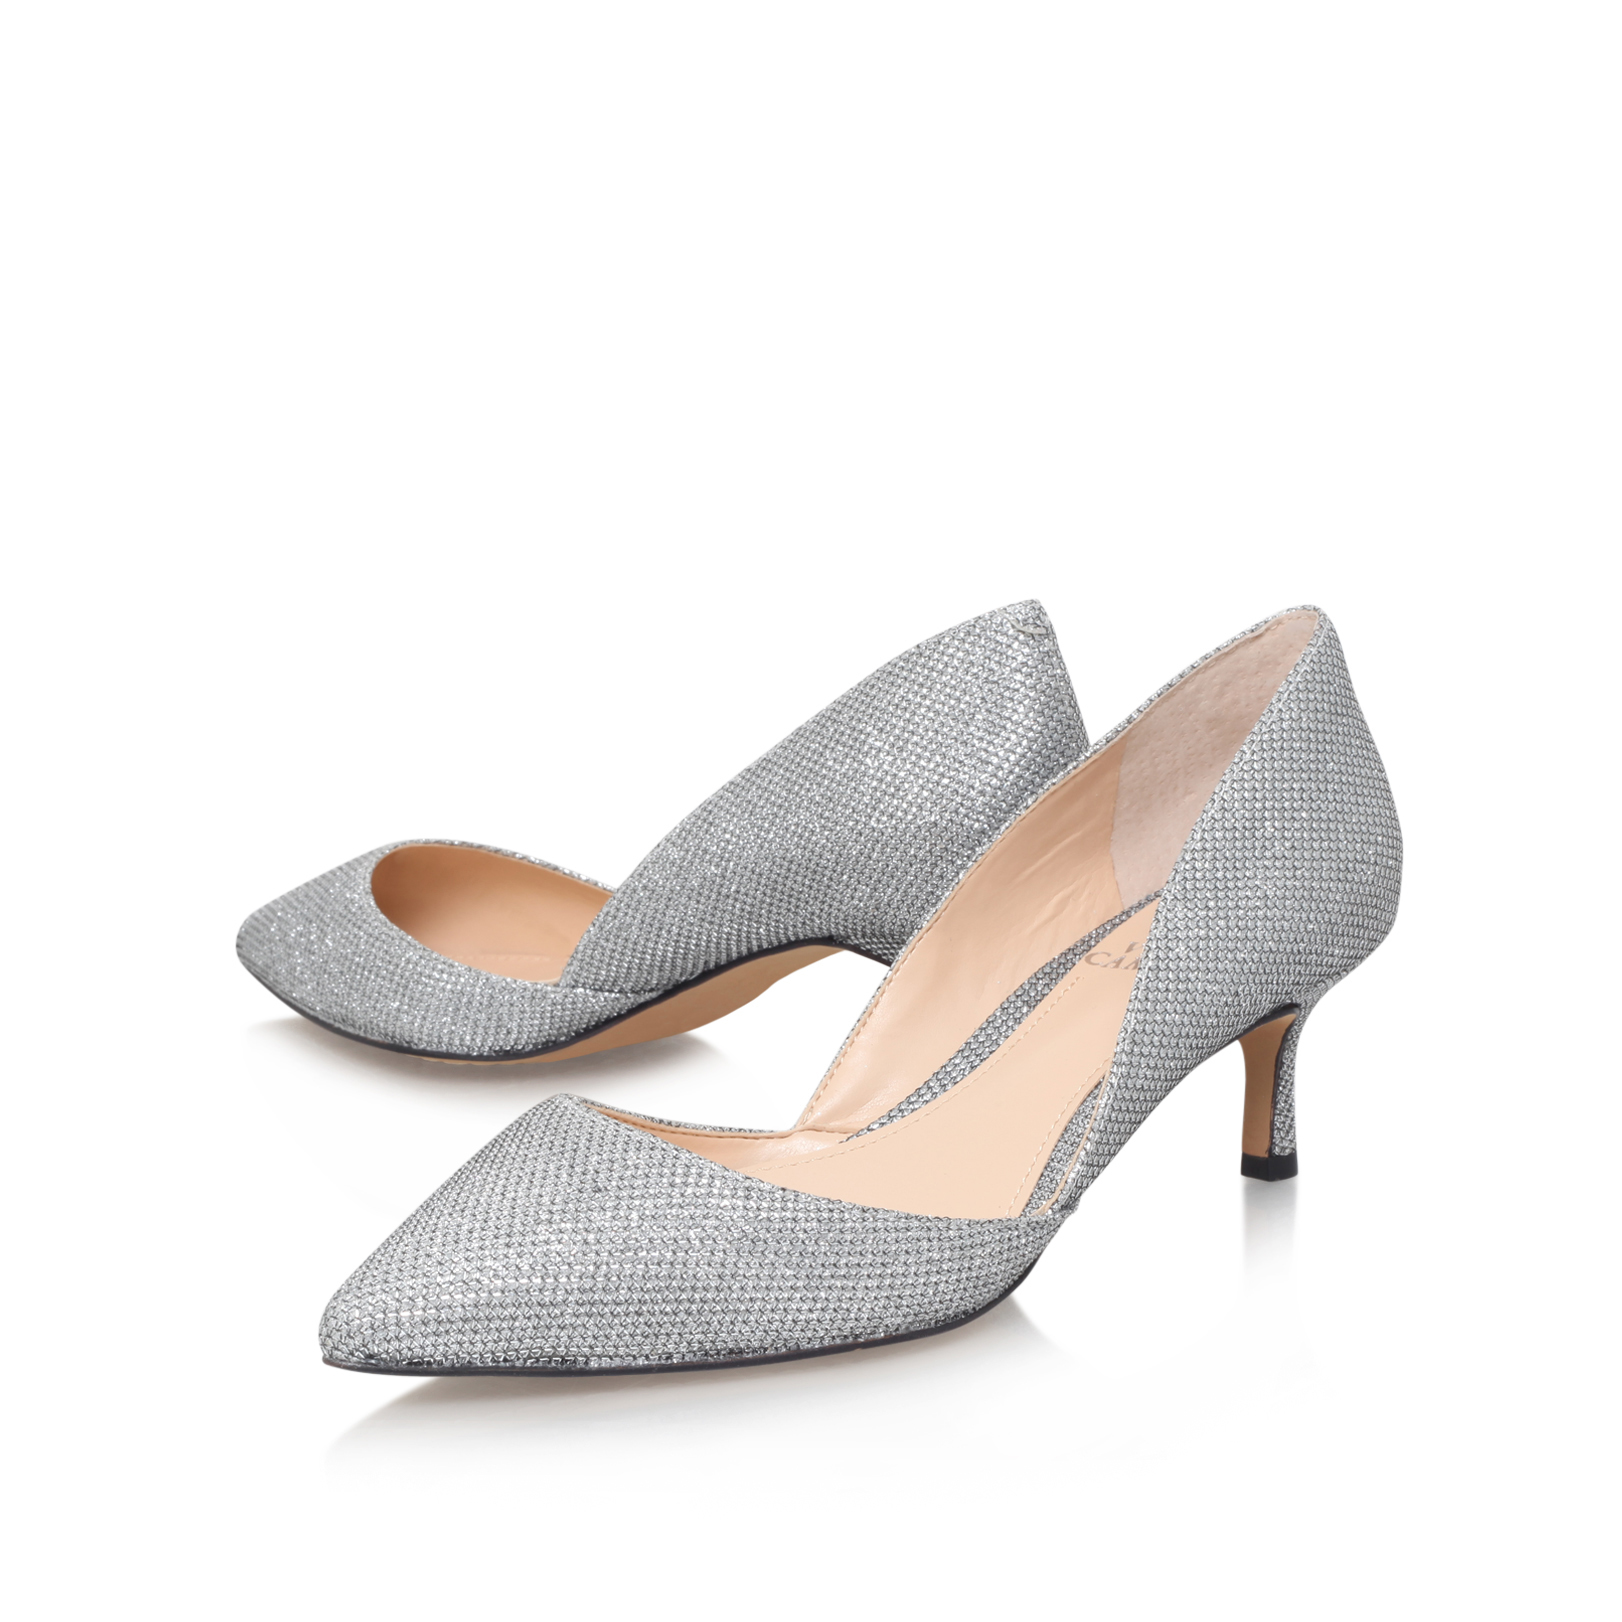 Vince Camuto | PREMELL Silver Mid Heel Court Shoes by VINCE CAMUTO